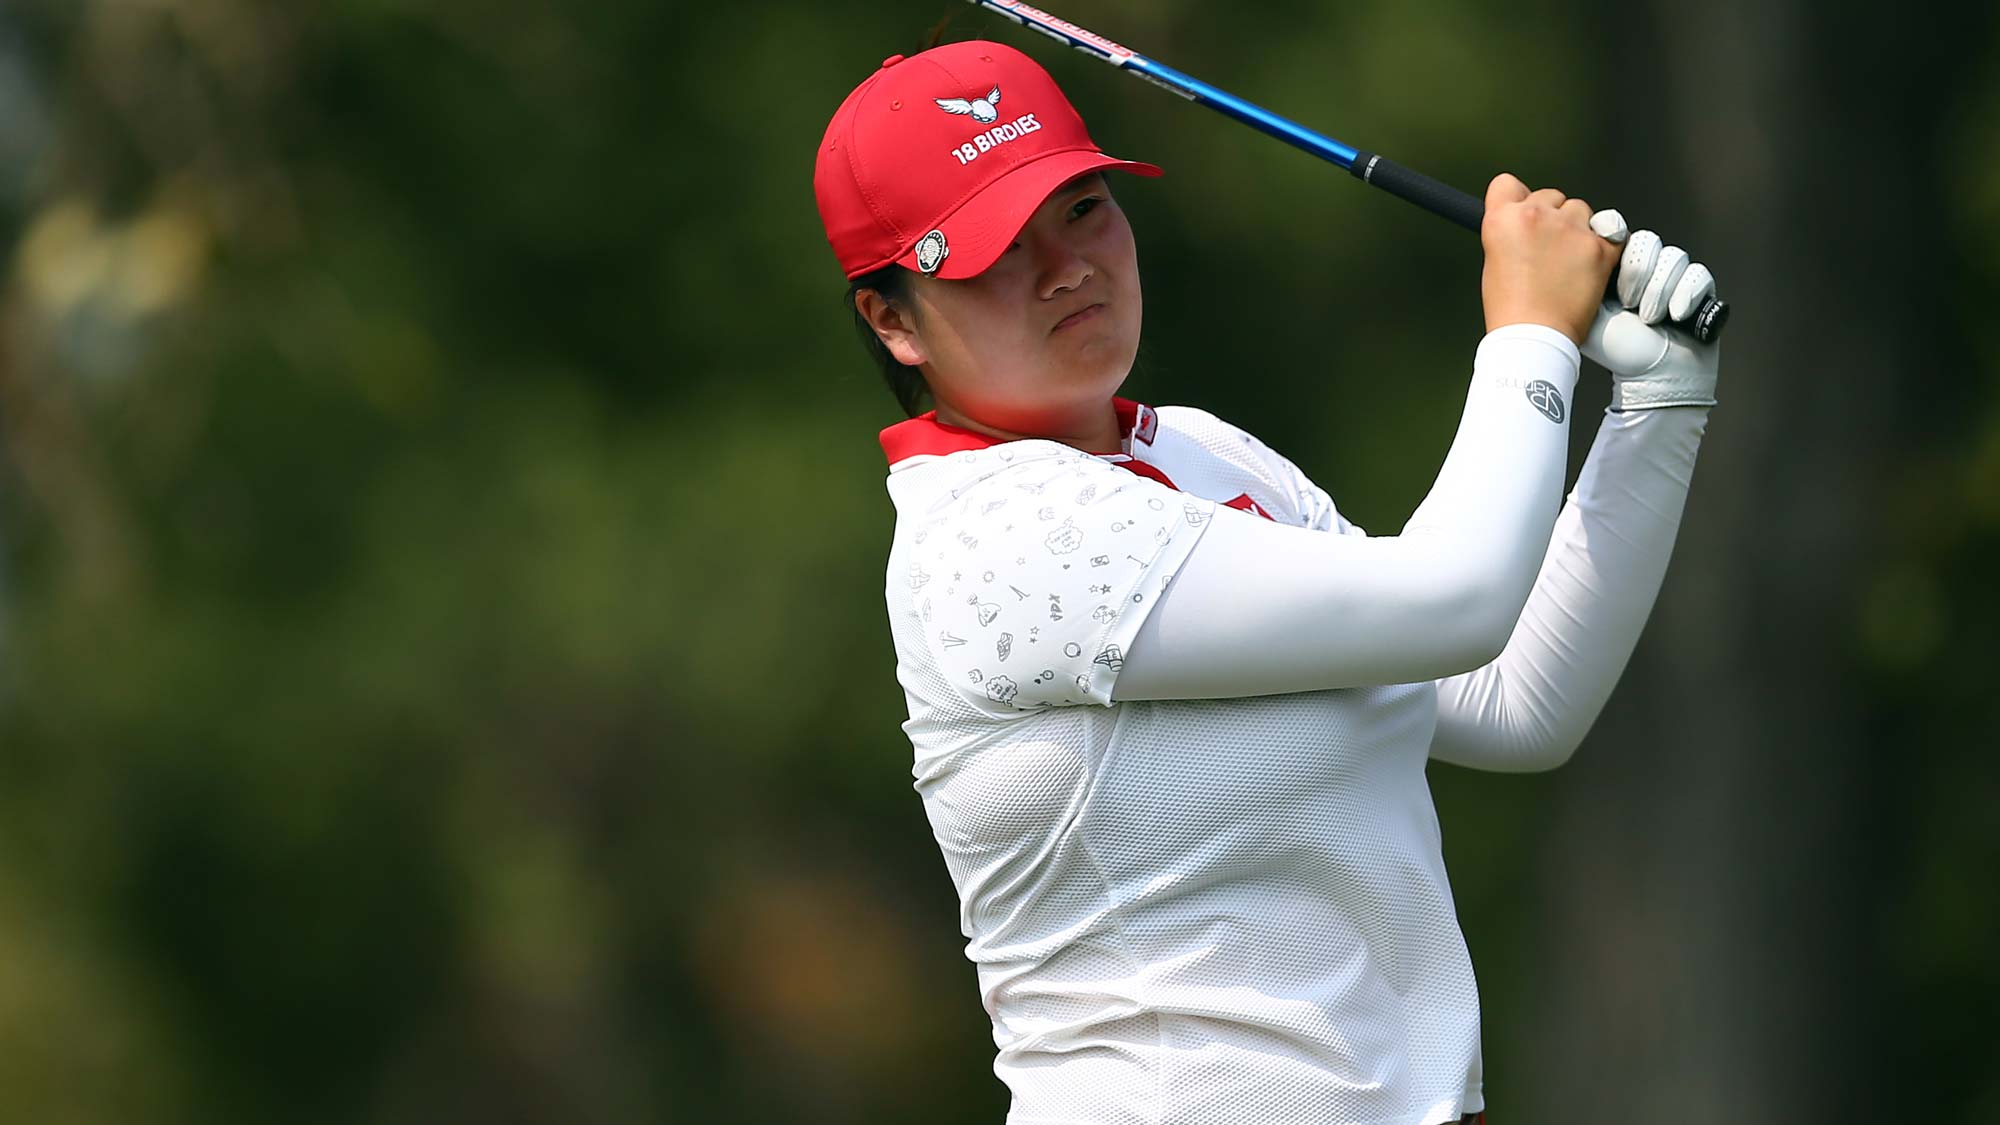 Angel Yin of the United States hits her tee shot on the 9th hole during the second round of the CP Womens Open